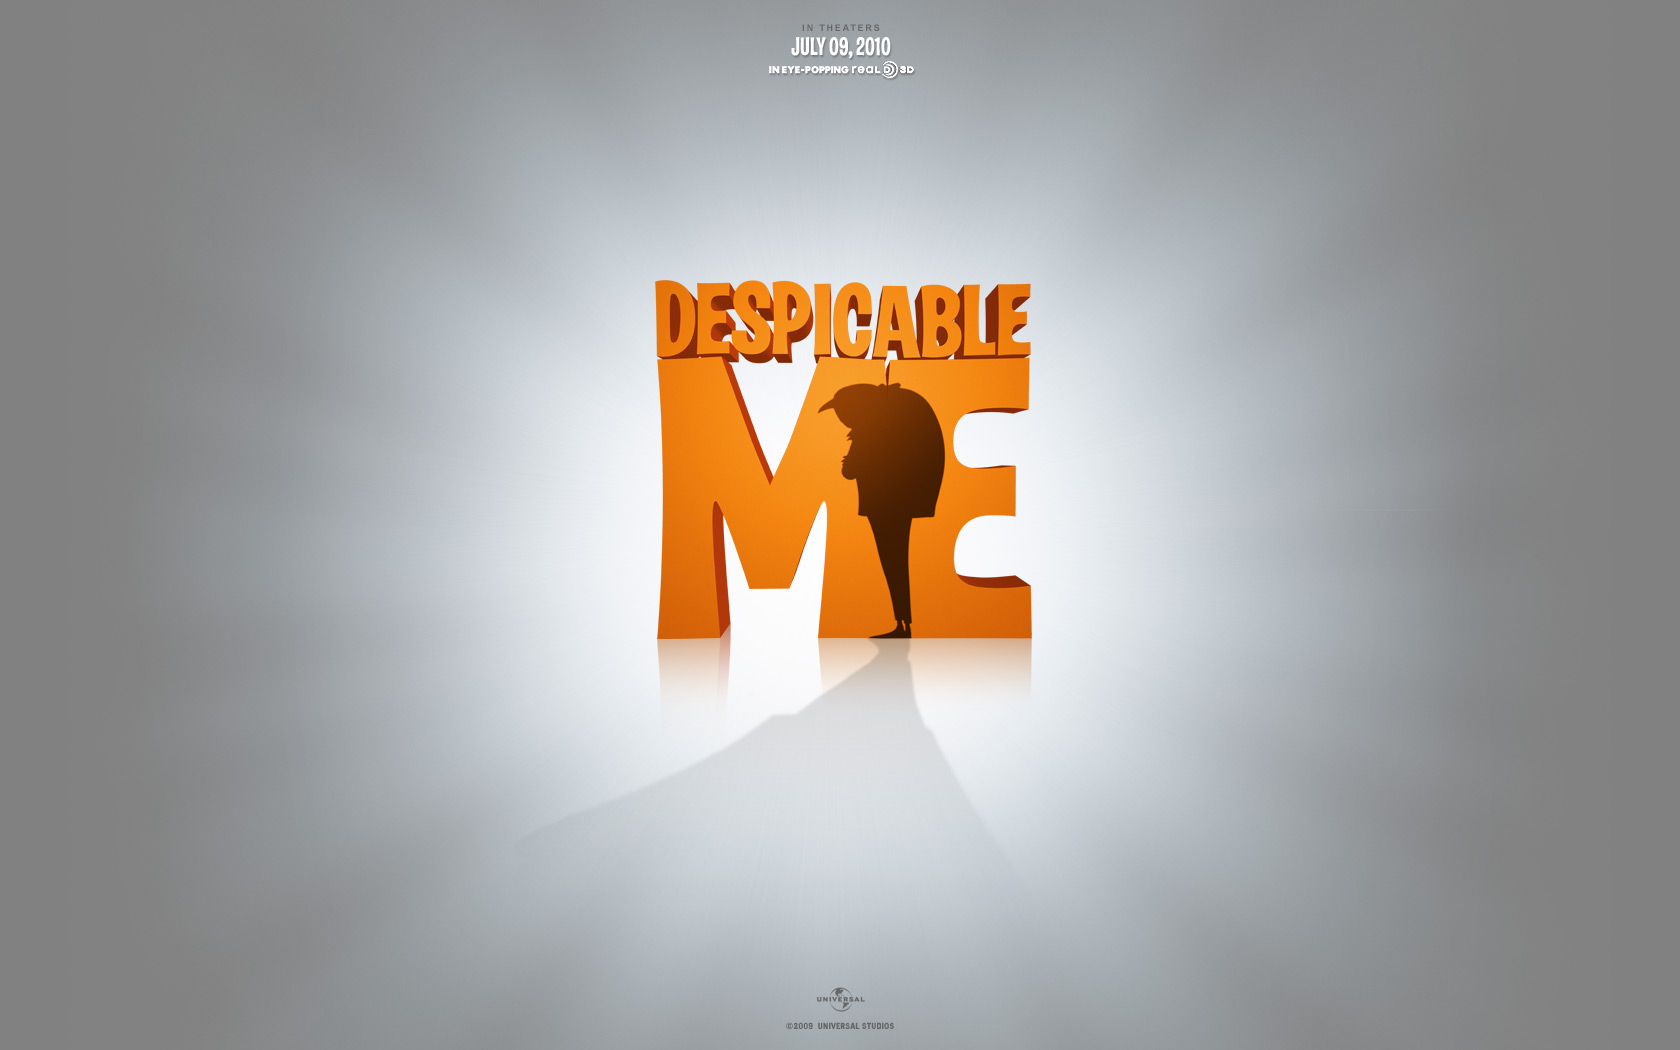 Despicable Me 1 Wide Movie Poster - HD Wallpaper